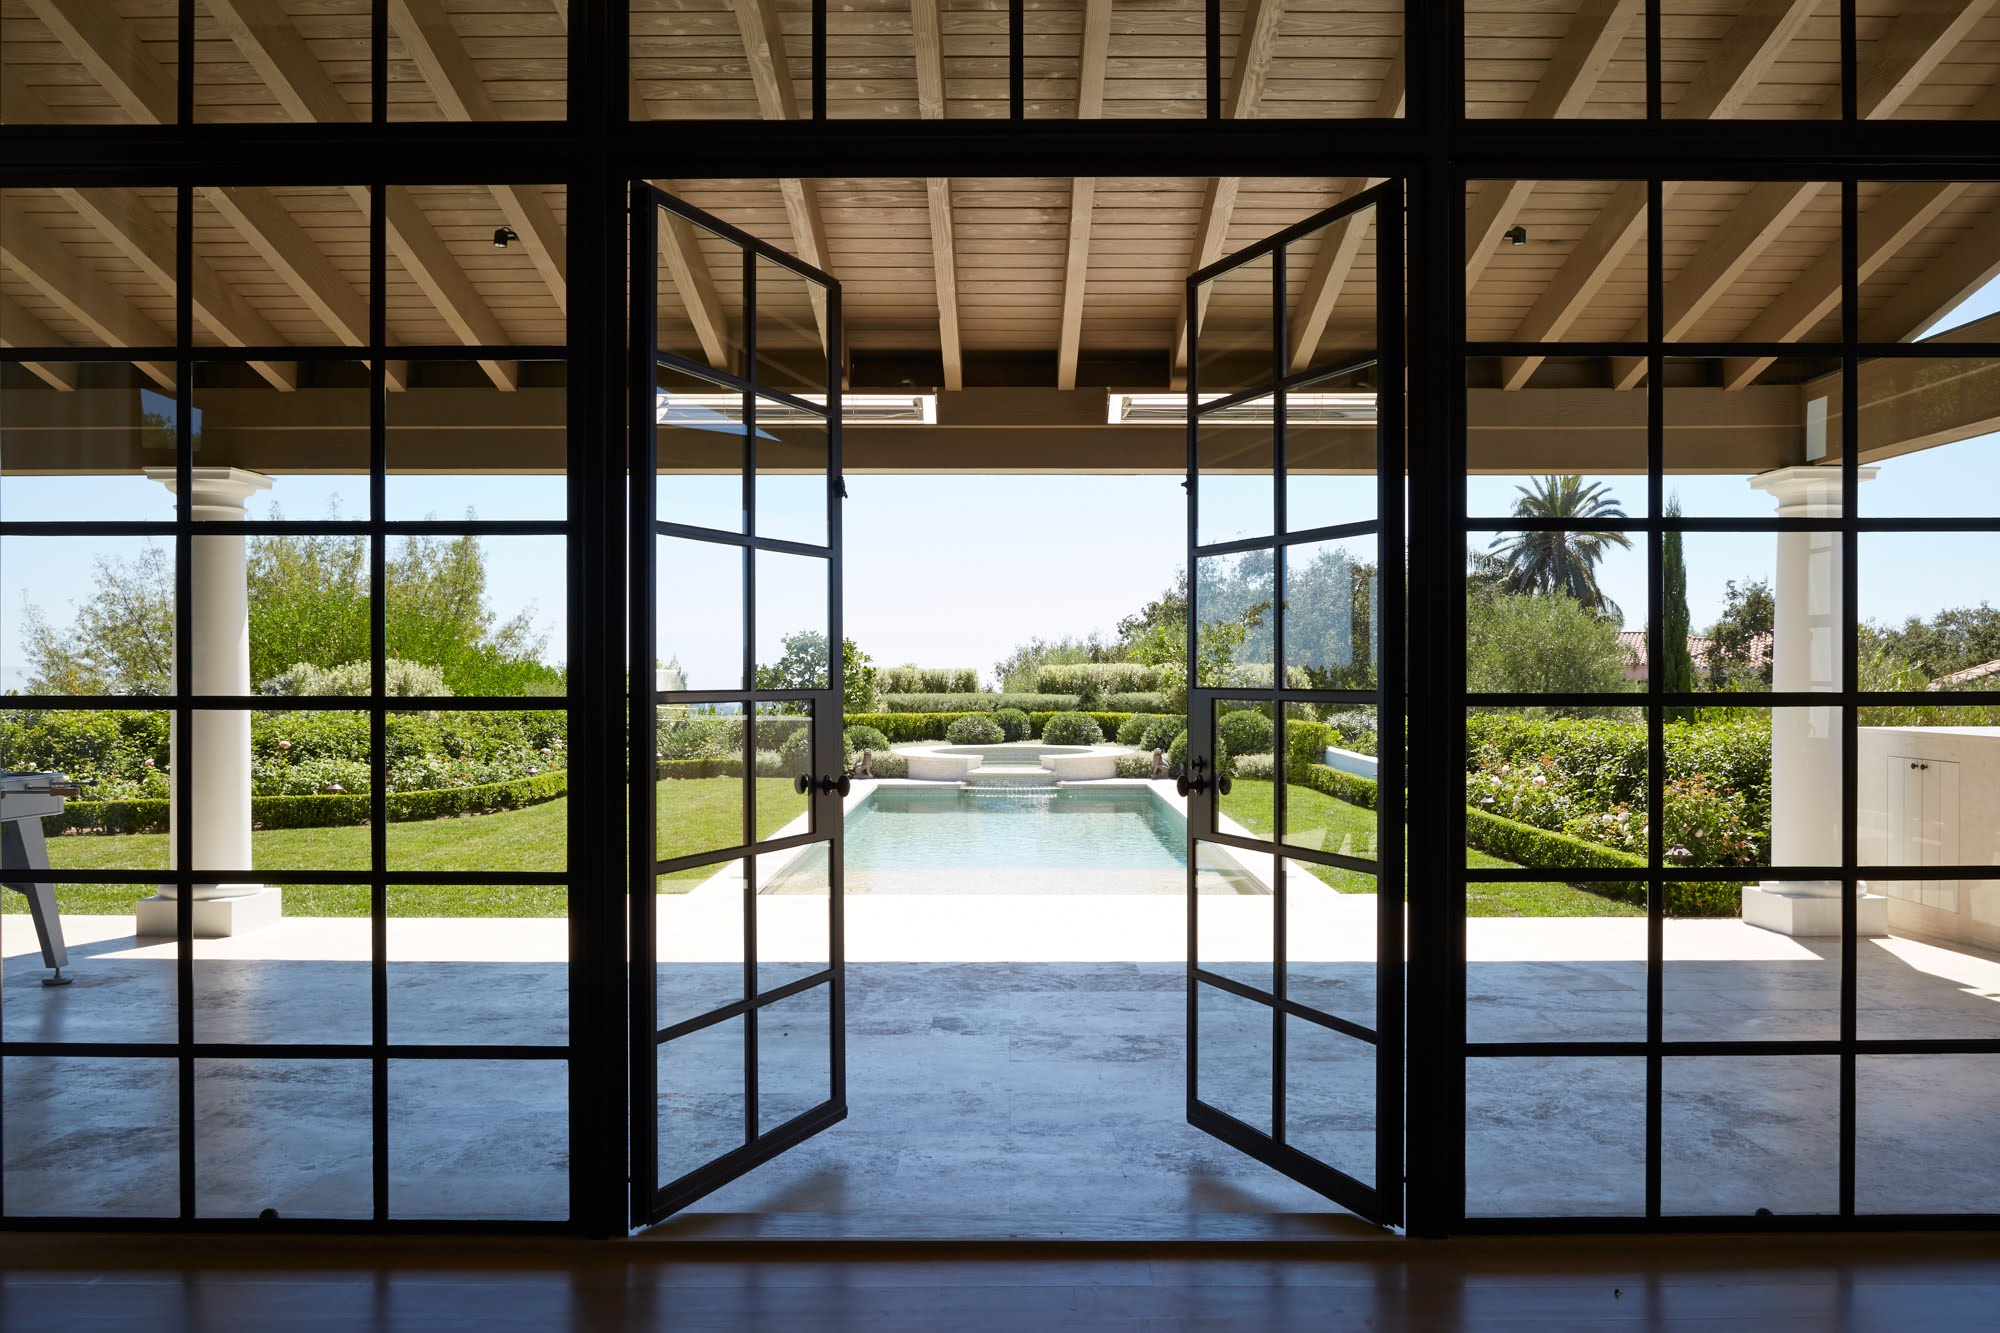 William_Hefner_beverly_crest_projects_Barnett__French_Doors__01__Pool_View